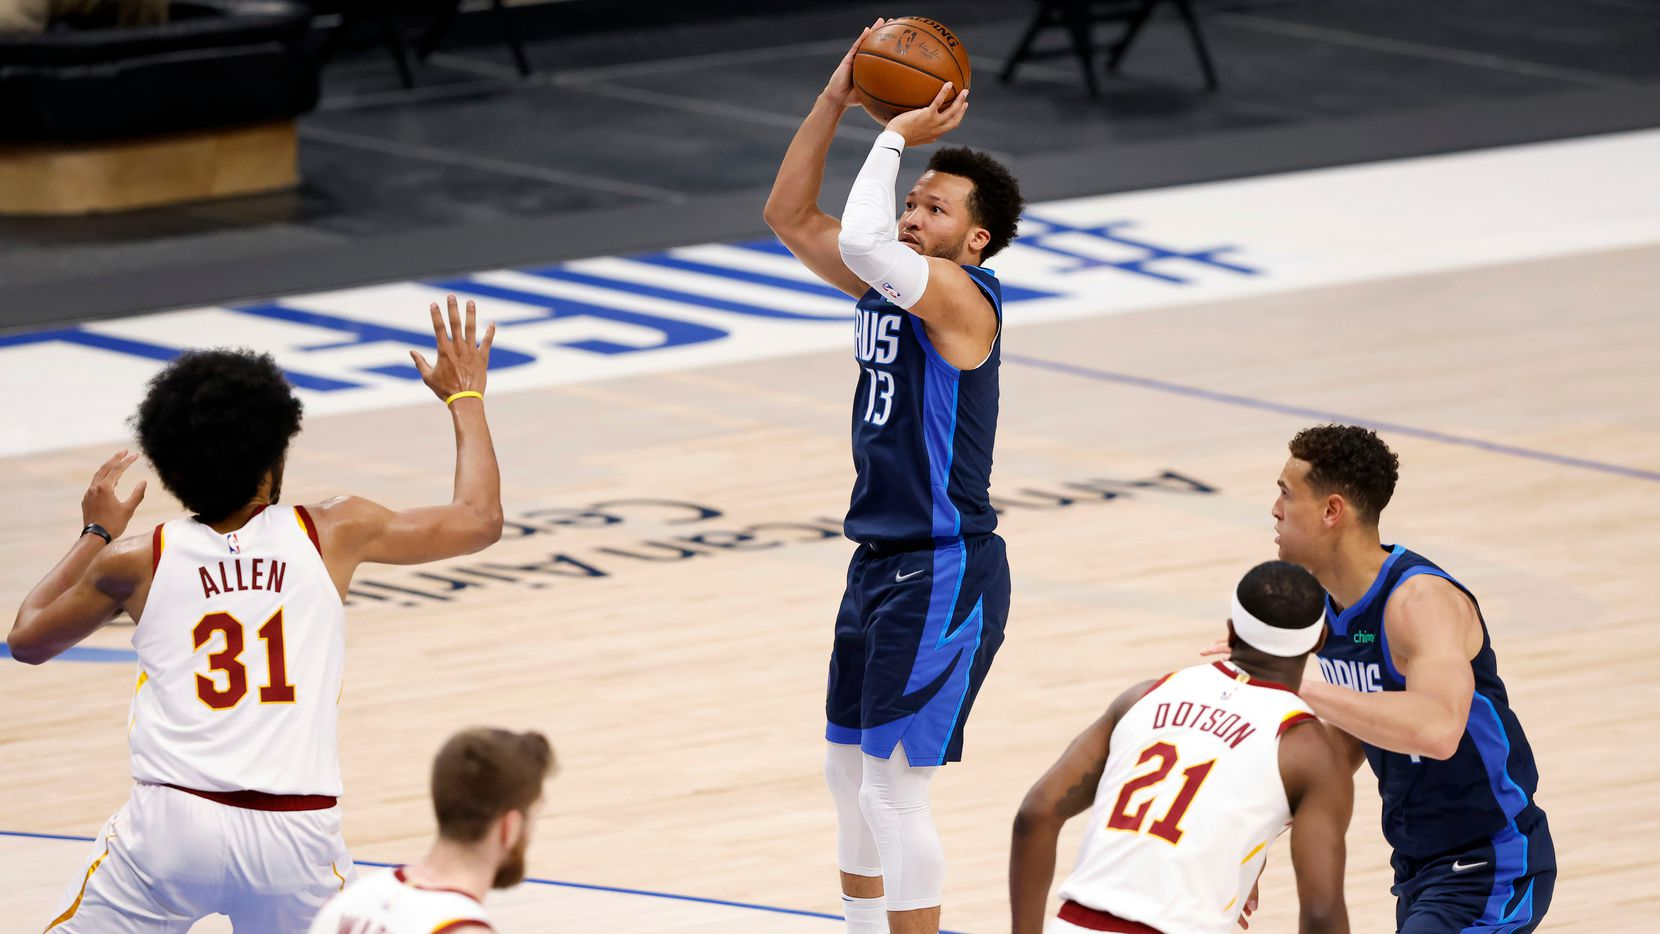 Dallas Mavericks guard Jalen Brunson (13) puts up an open jump shot against the Cleveland Cavaliers during the first quarter at the American Airlines Center in Dallas, Friday, May 7, 2021. (Tom Fox/The Dallas Morning News)